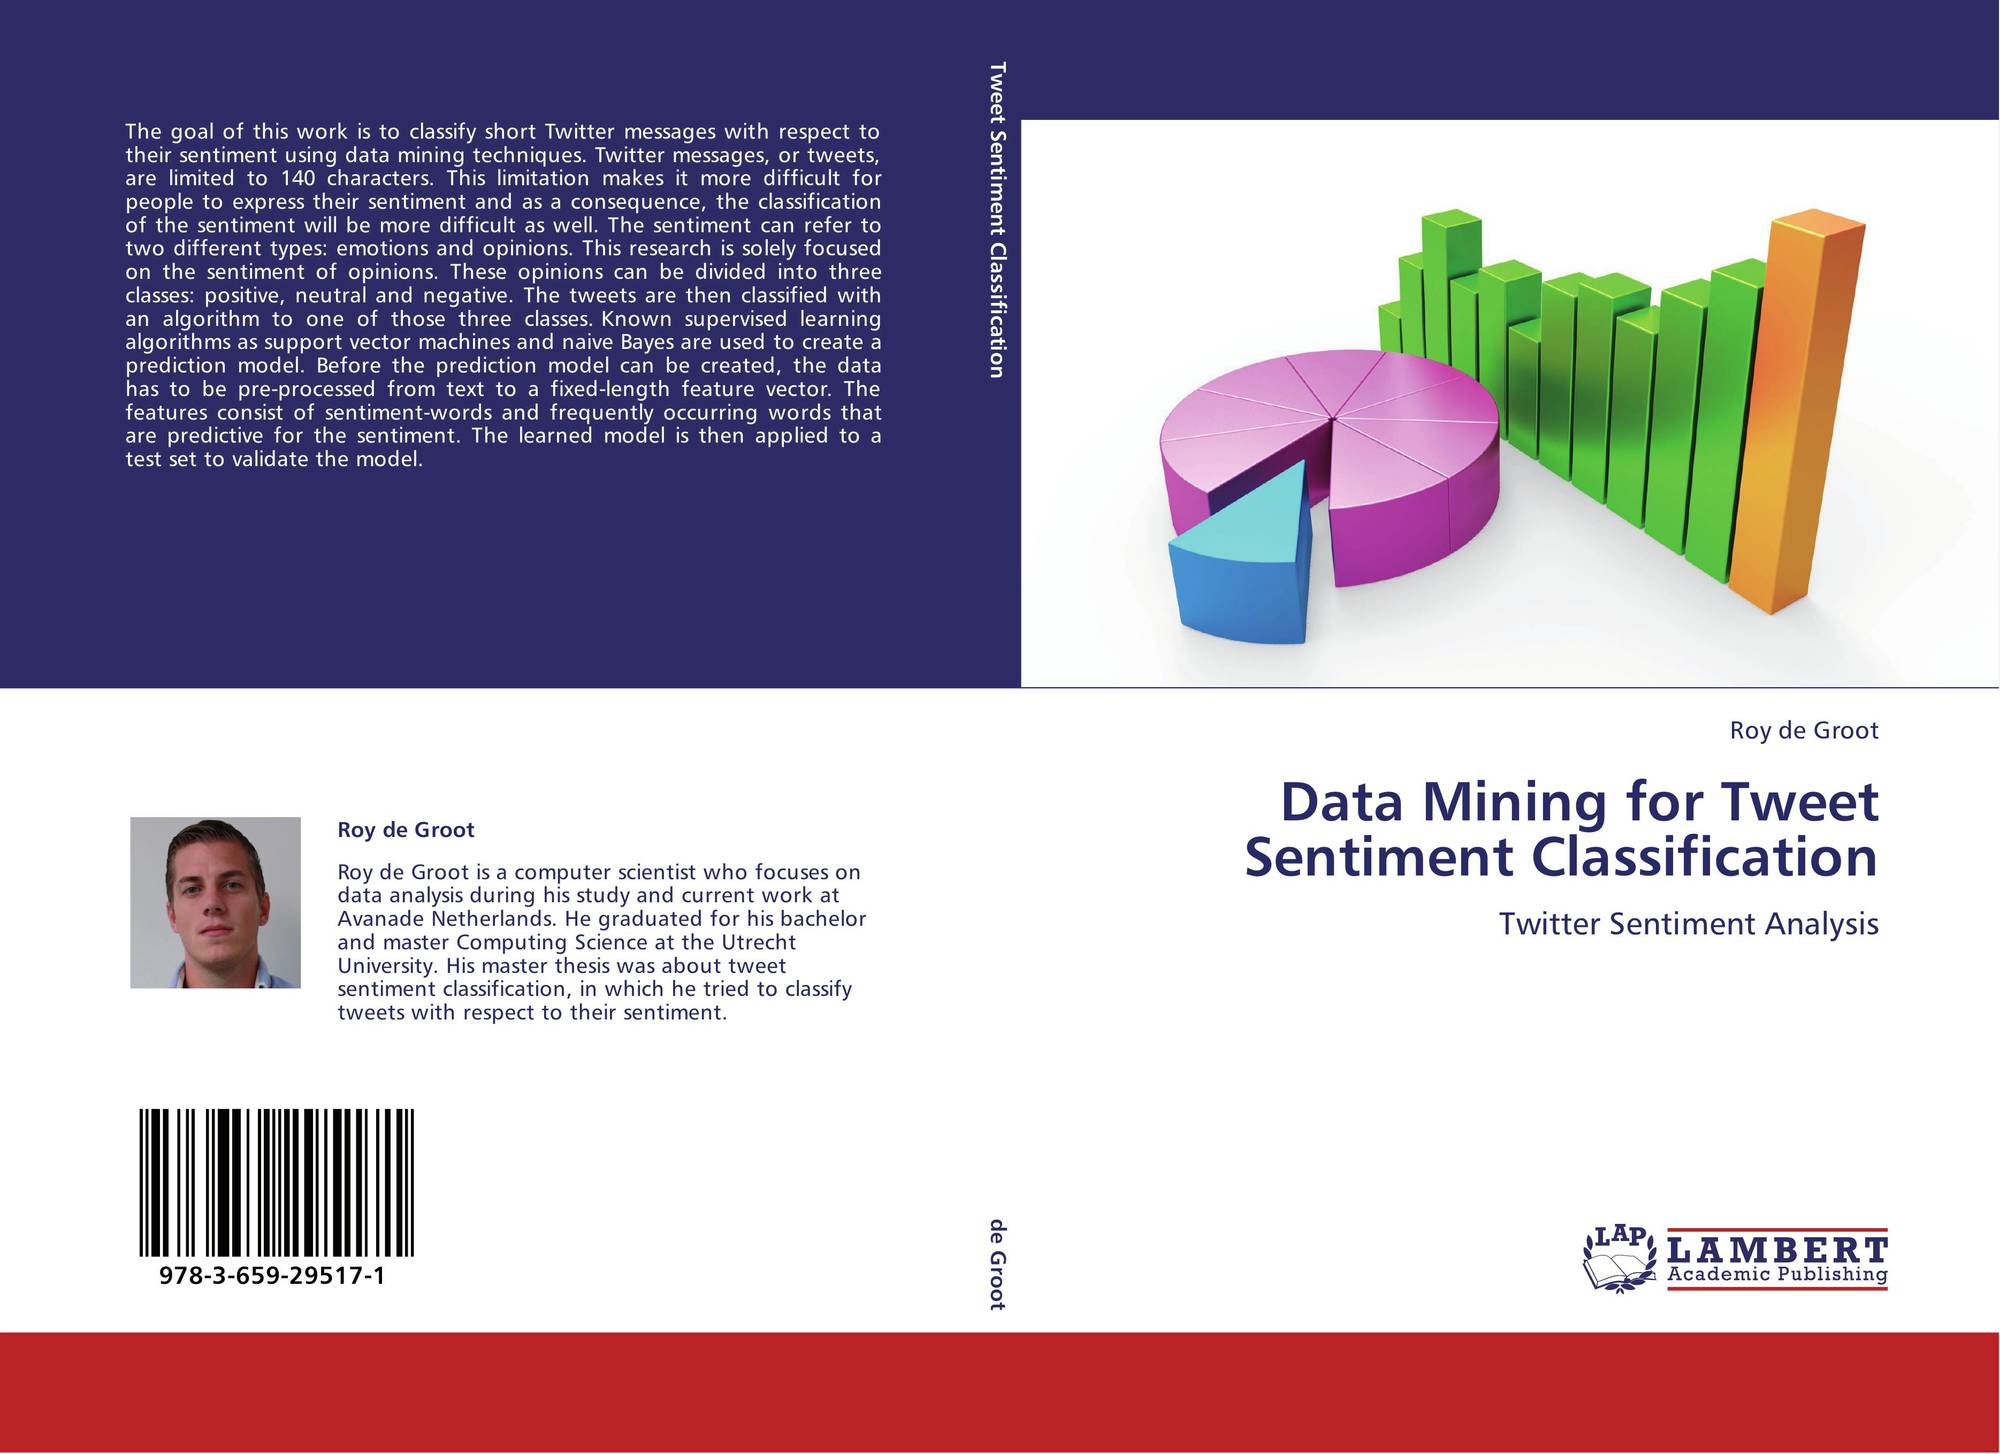 Data Mining for Tweet Sentiment Classification, 978-3-659-29517-1